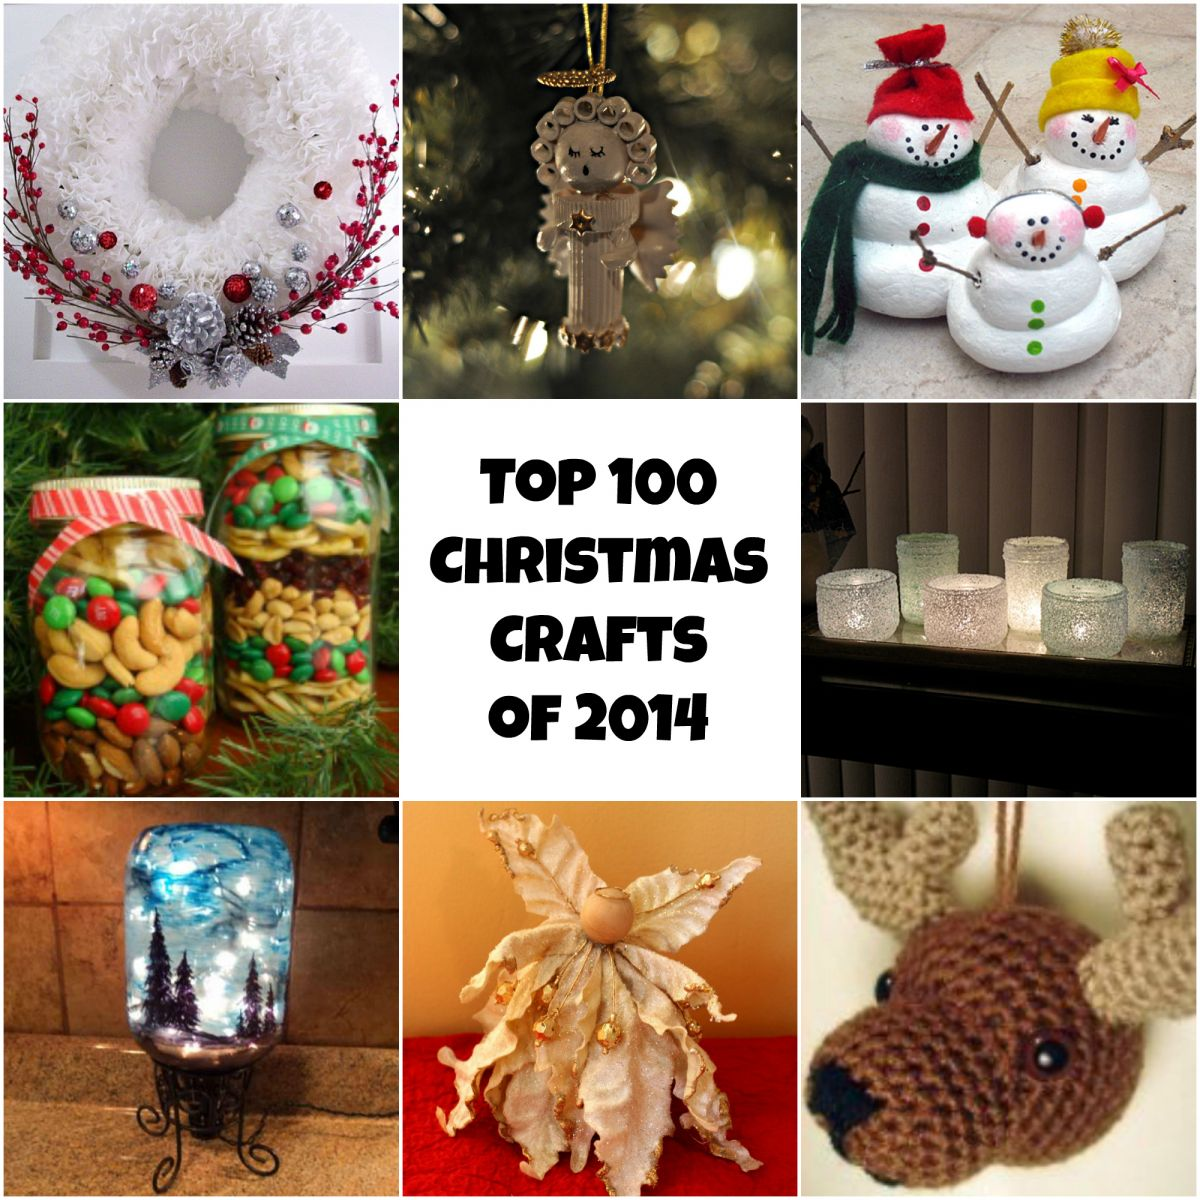 Top 100 diy christmas crafts of 2014 homemade christmas ornaments top 100 diy christmas crafts of 2013 diy christmas ornaments homemade christmas decorations solutioingenieria Images